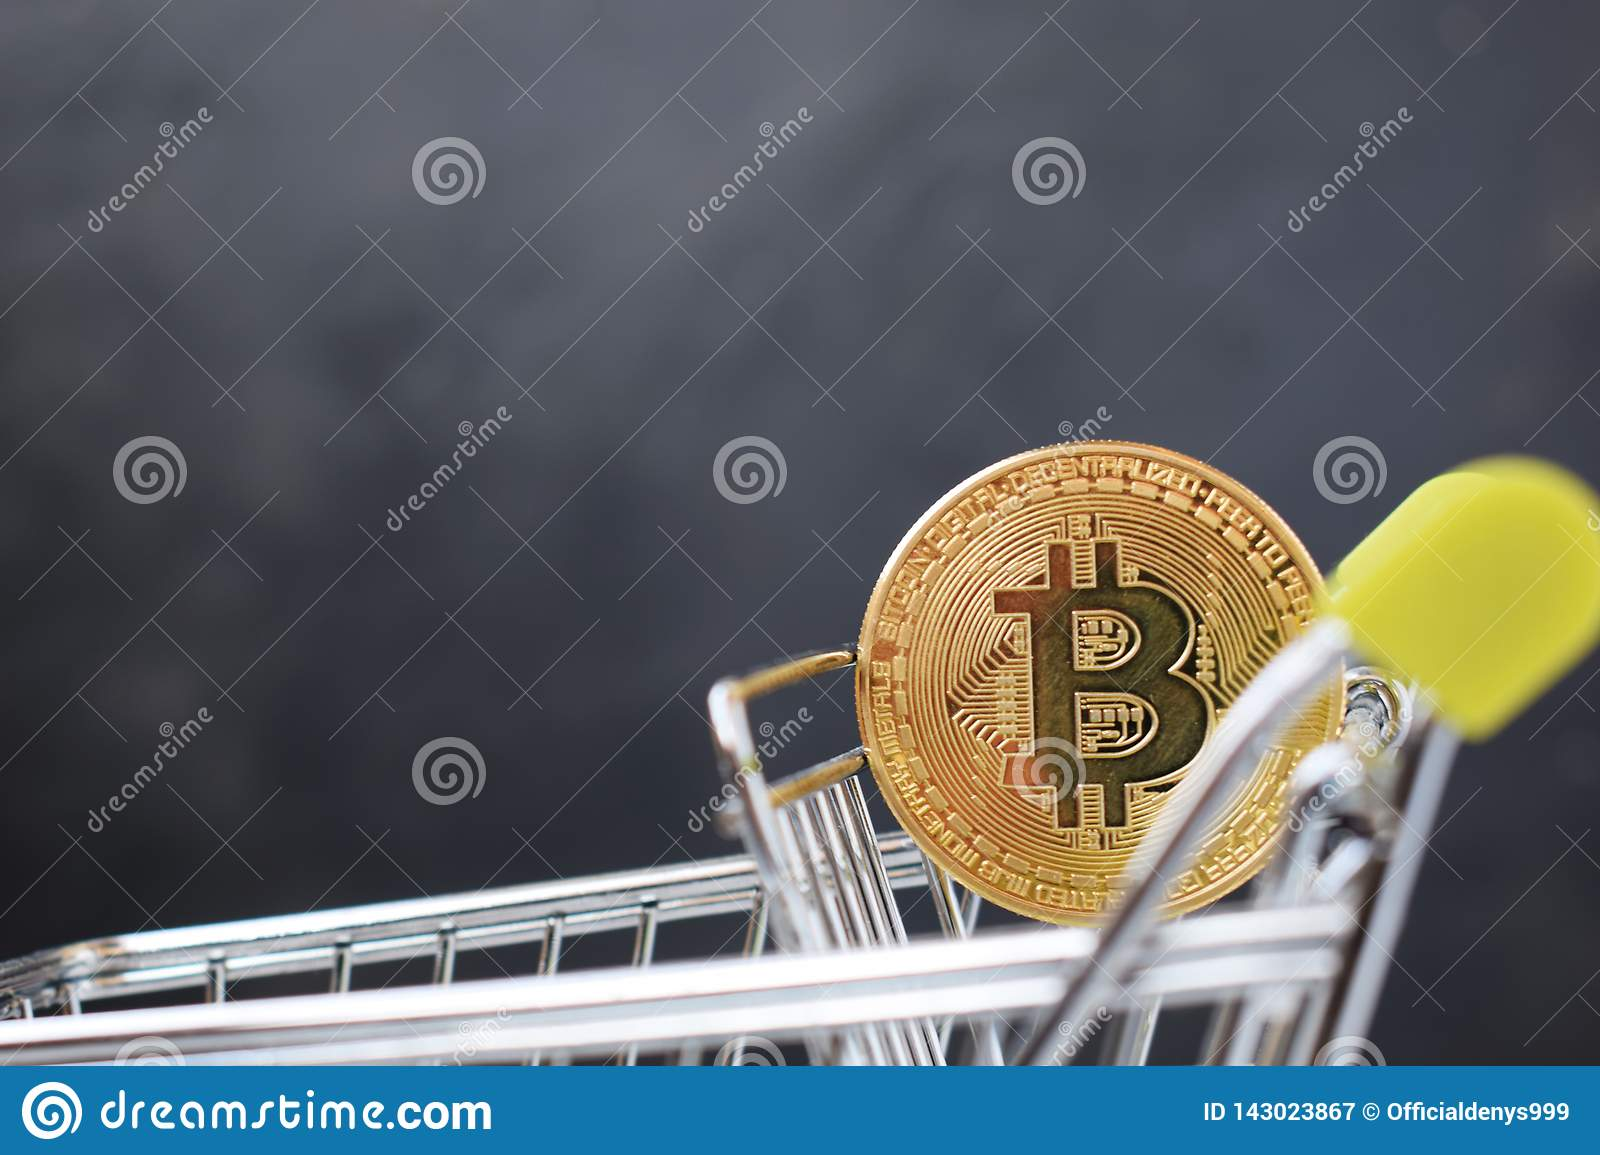 buying cryptocurrency as an investment